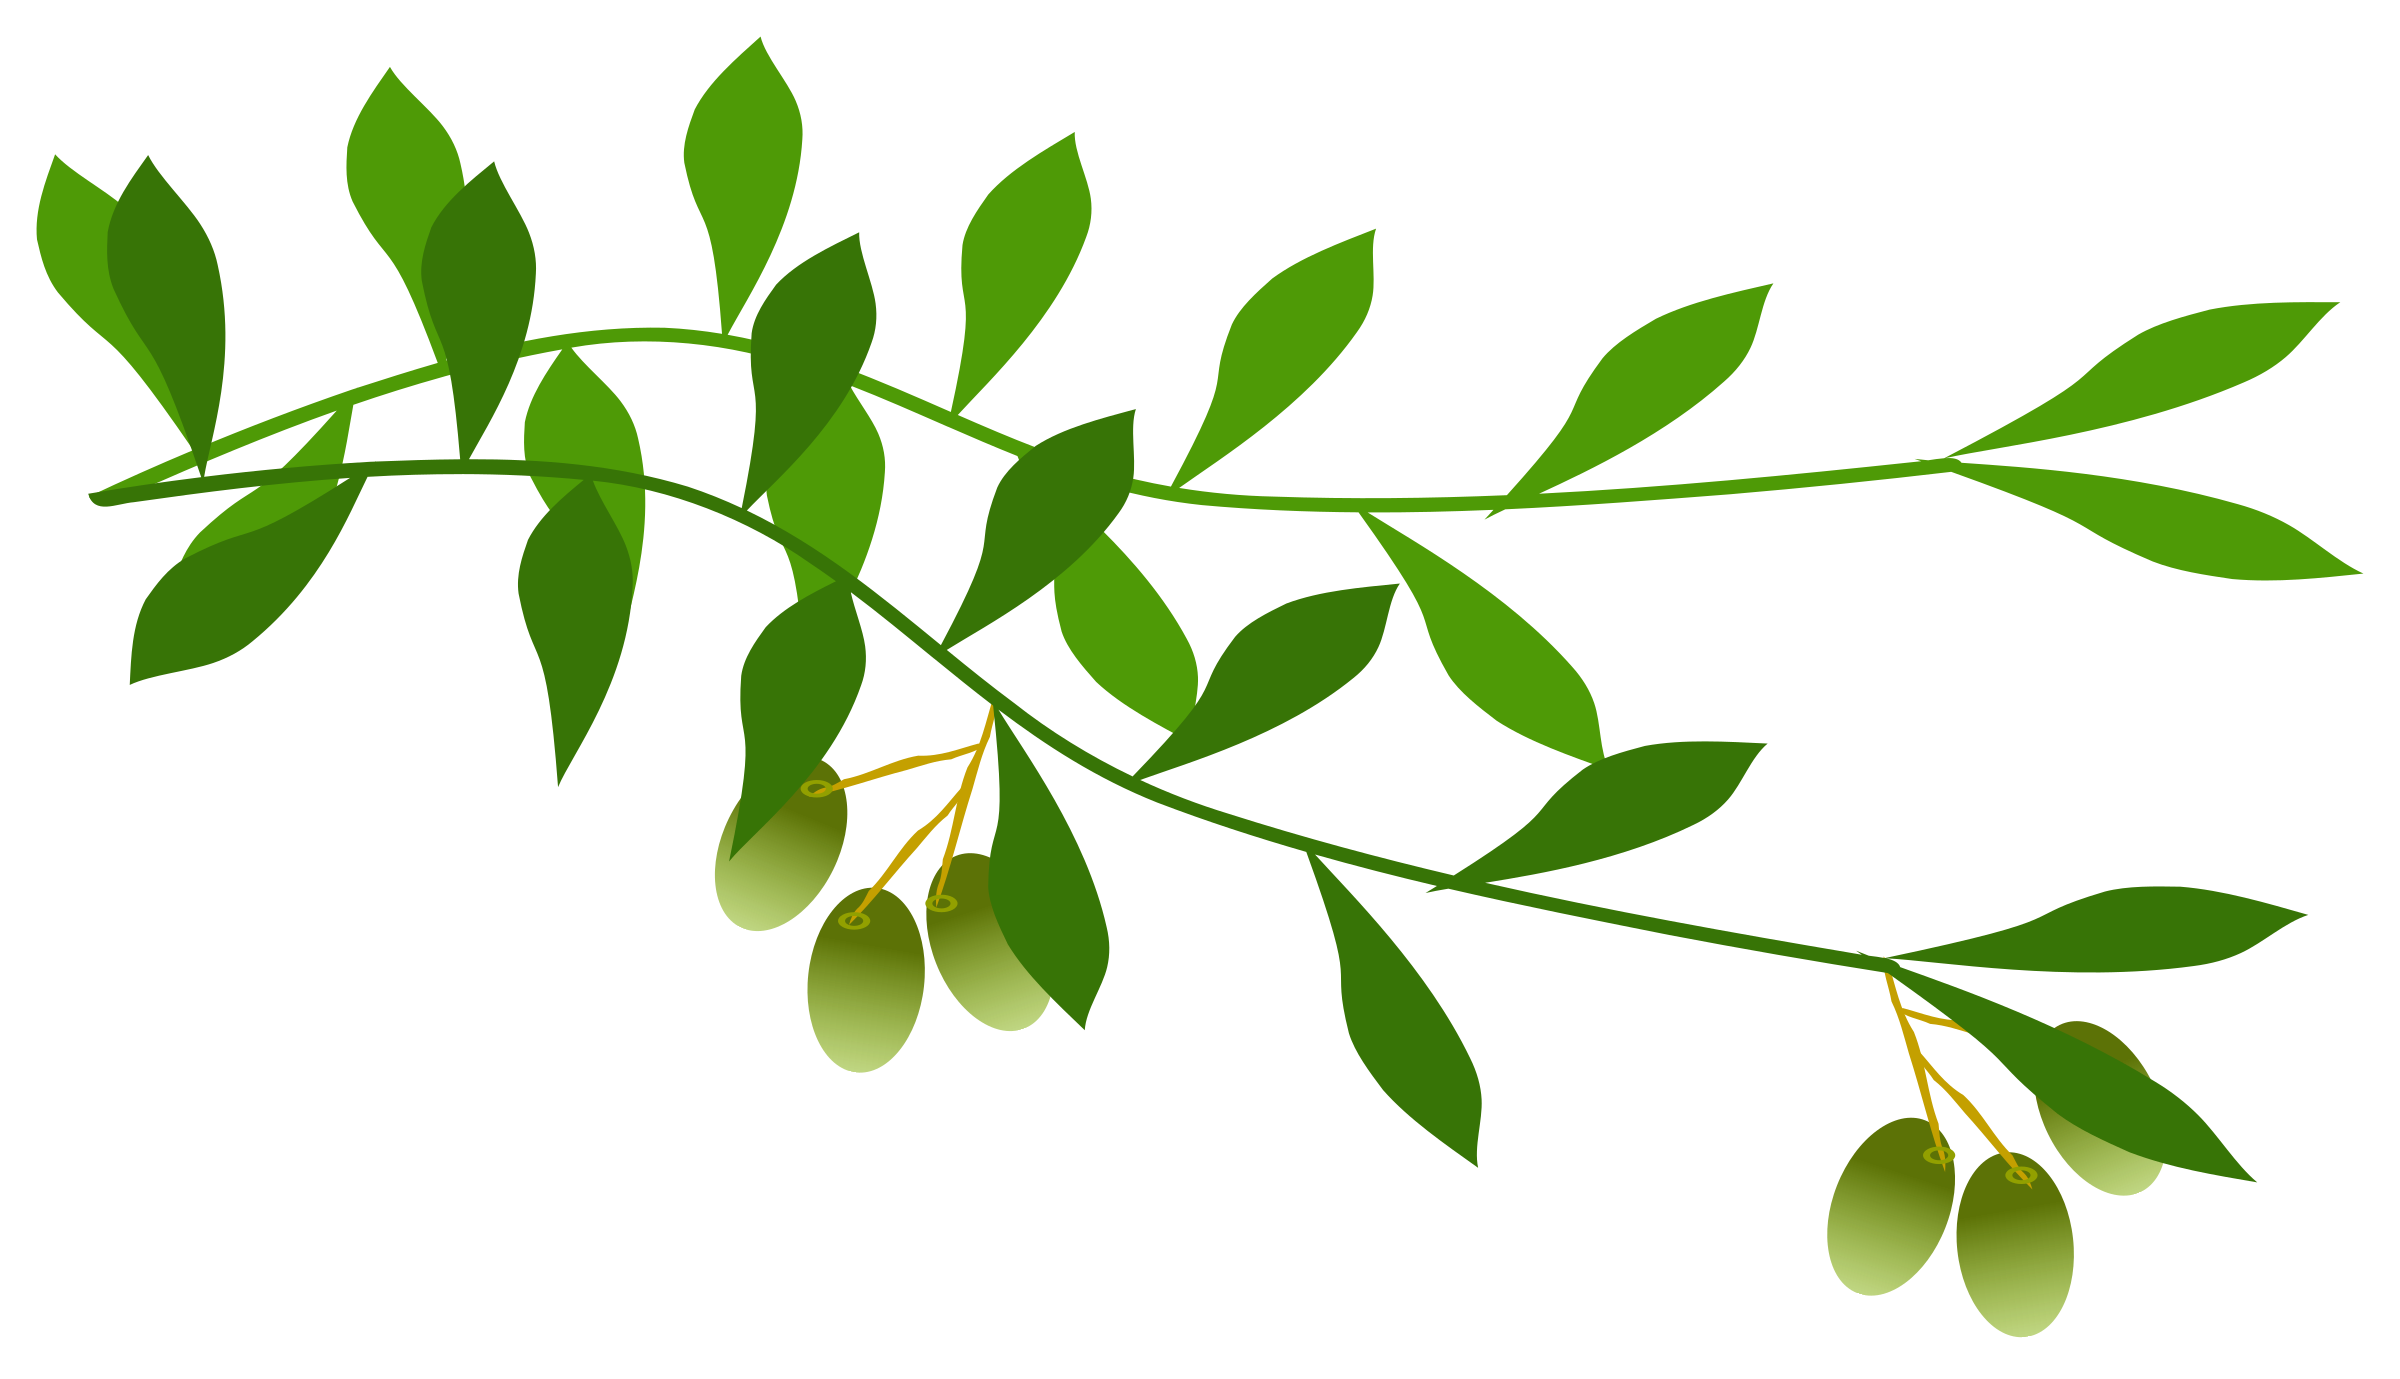 Olive branches clipart picture black and white Olive Branches Png, png collections at sccpre.cat picture black and white